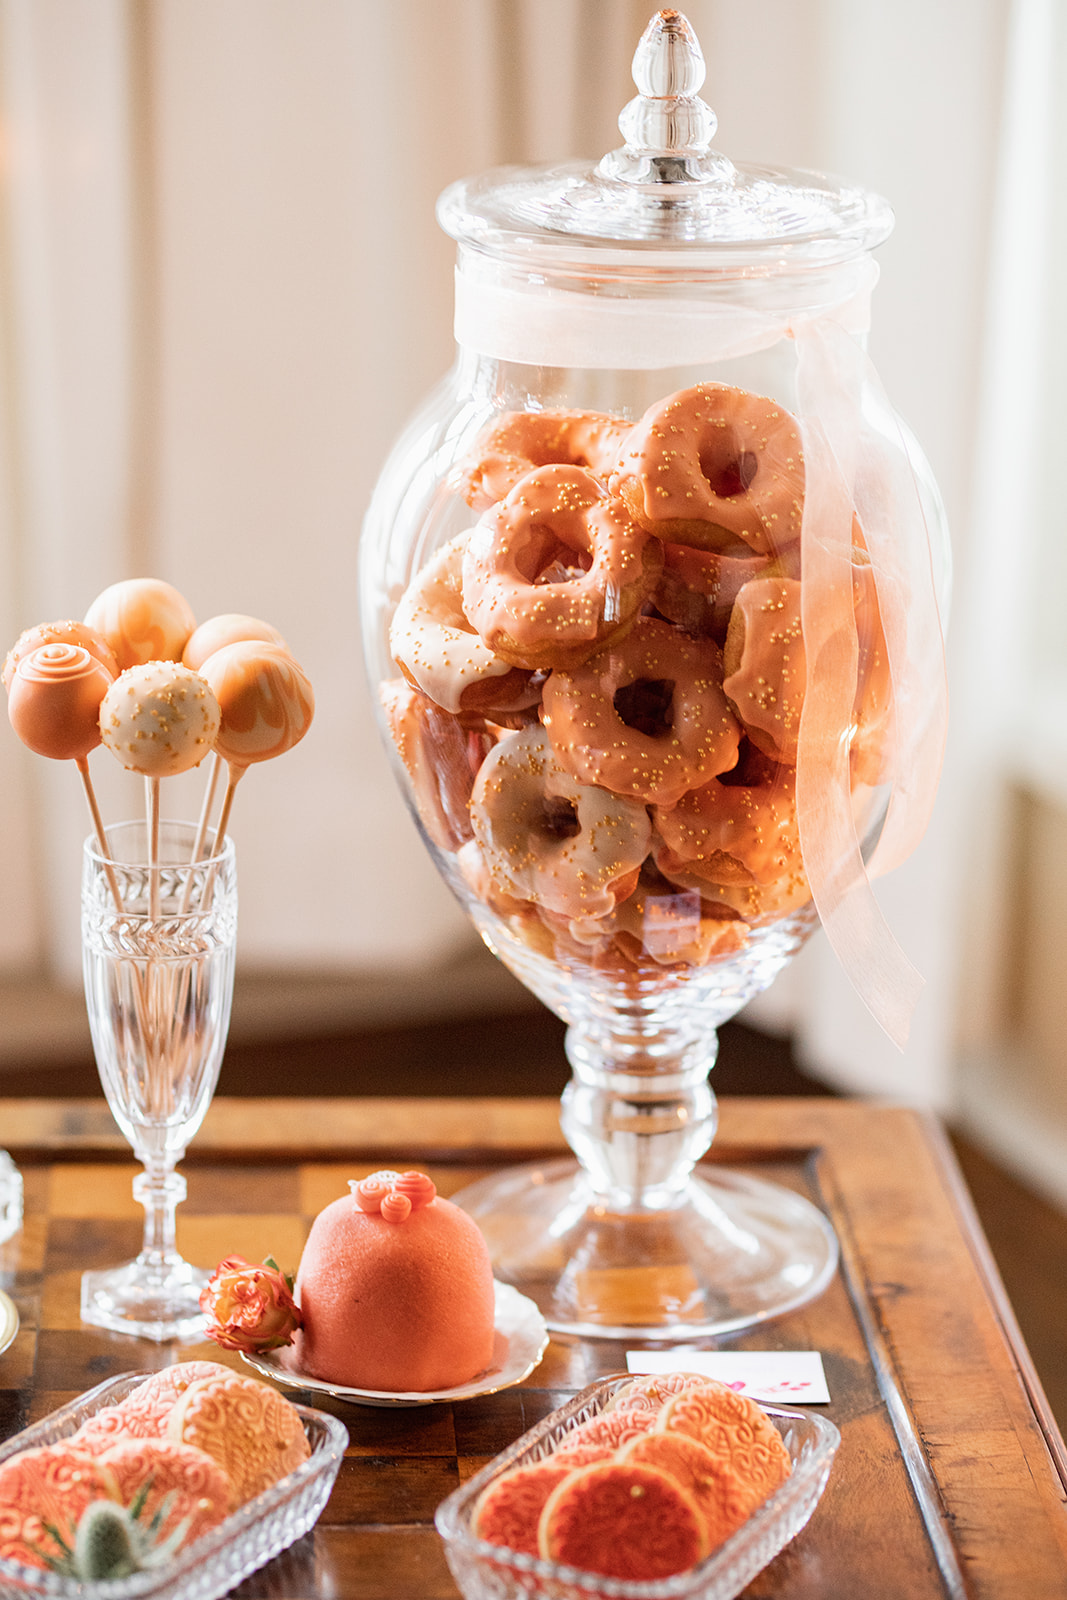 Donuts & Candy